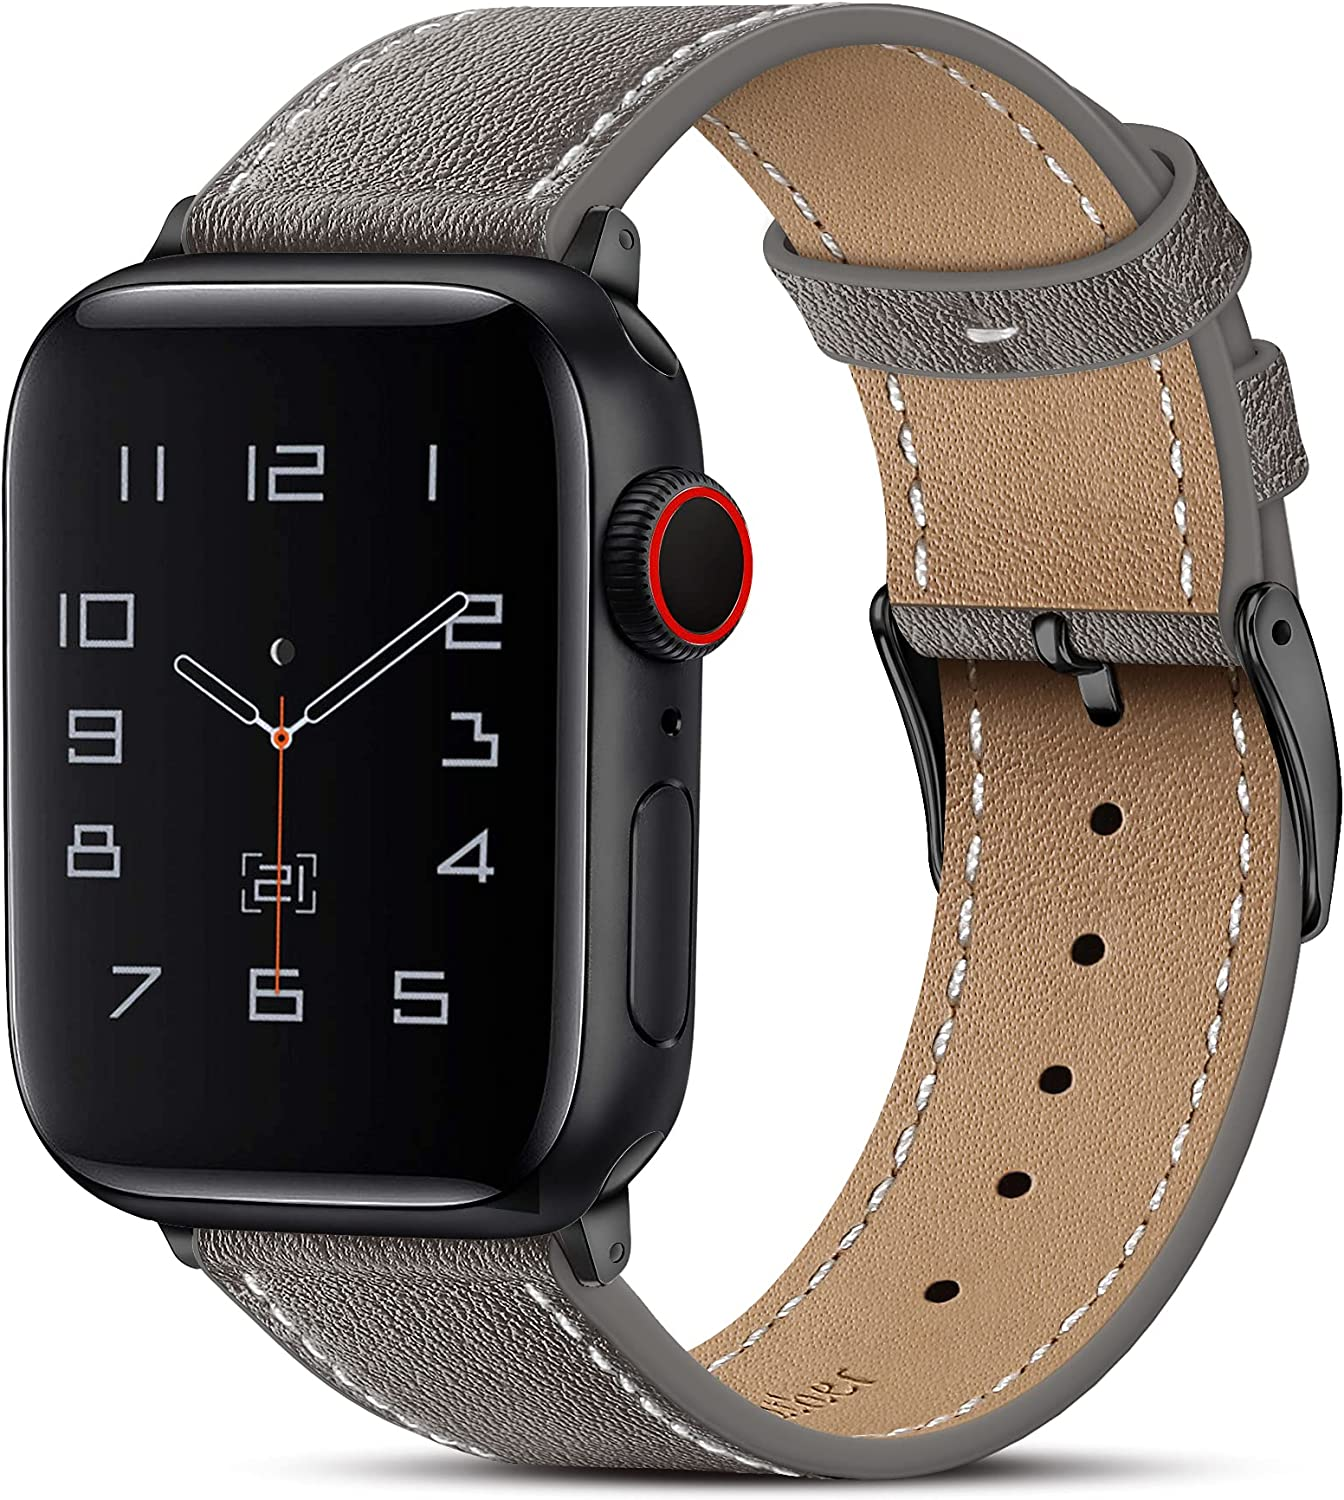 Marge Plus Compatible with Apple Watch Band 44mm 42mm 40mm 38mm, Genuine Leather Replacement Band for iWatch Series 6 5 4 3 2 1, SE (Dark Gray/Black, 44mm/42mm)